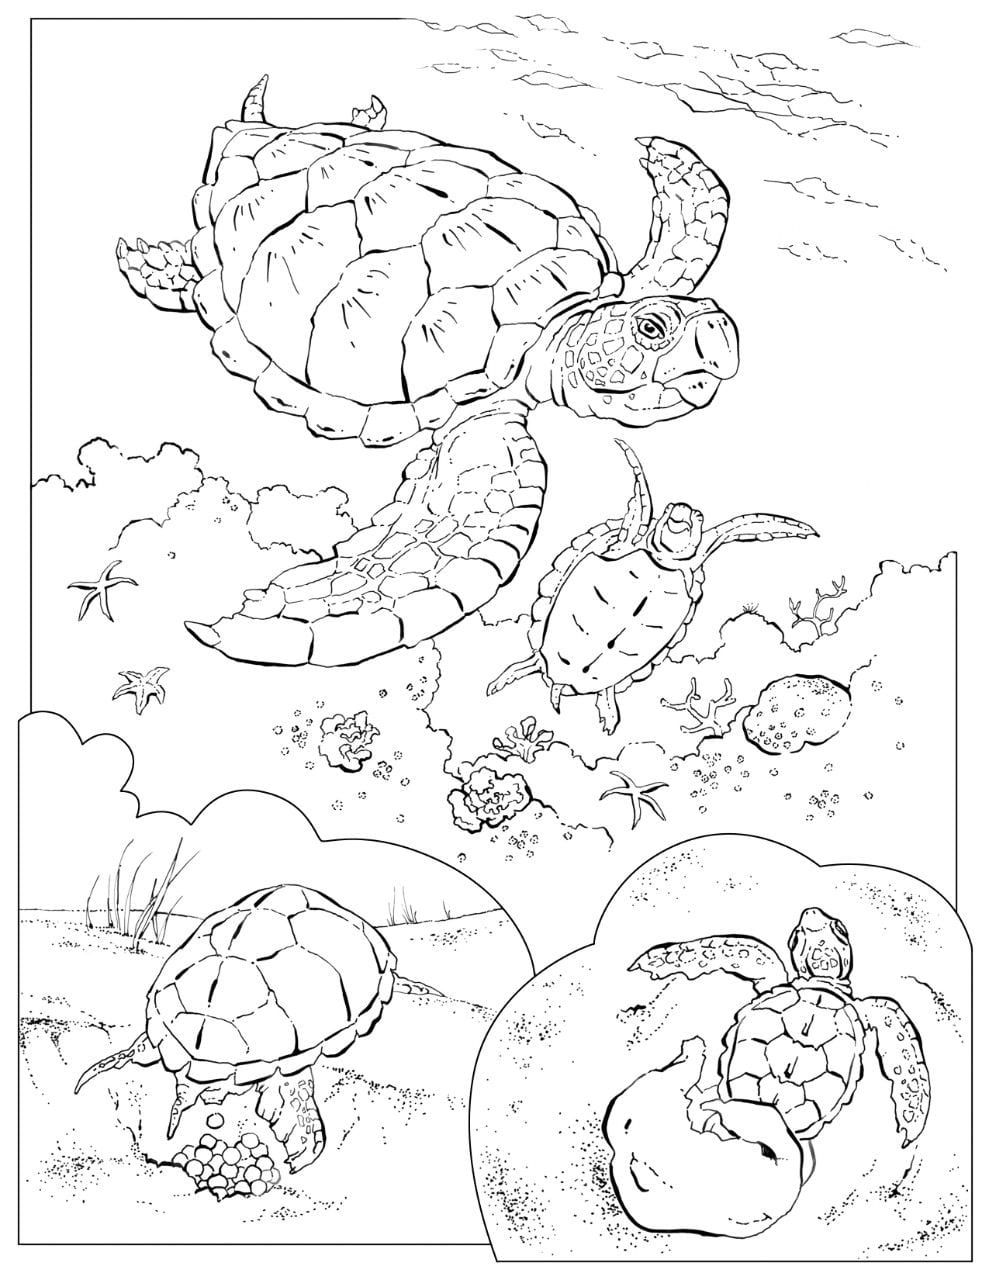 National Geographic Coloring Pages Turtle Coloring Pages Animal Coloring Pages Animal Coloring Books